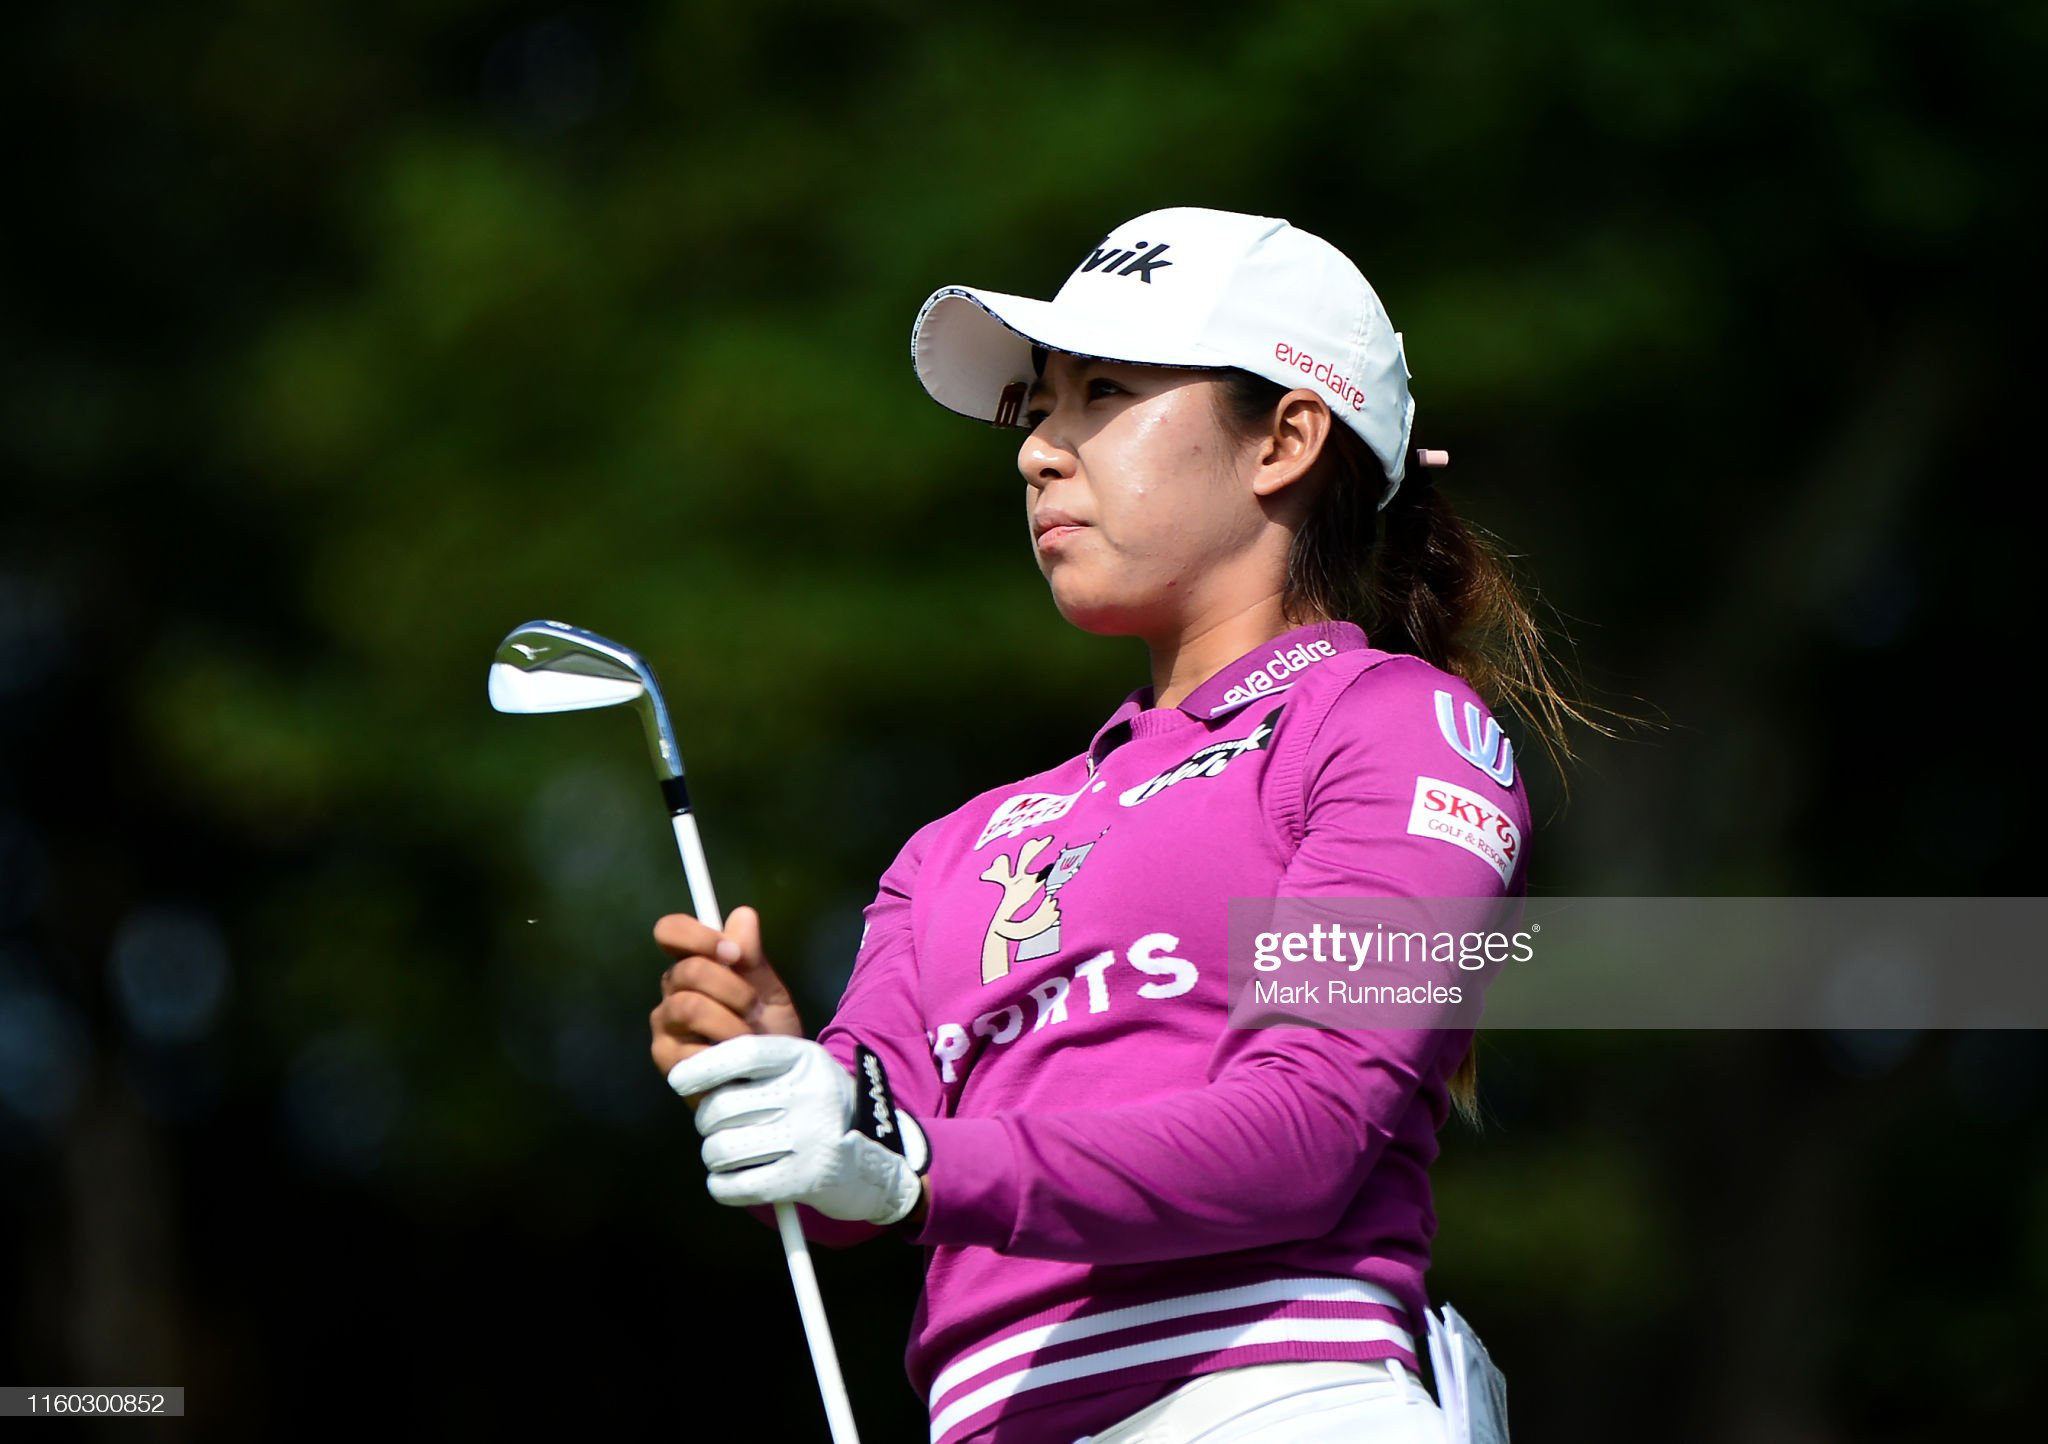 https://media.gettyimages.com/photos/mi-hyang-lee-of-korea-plays-her-tee-shot-to-the-9th-hole-during-day-picture-id1160300852?s=2048x2048